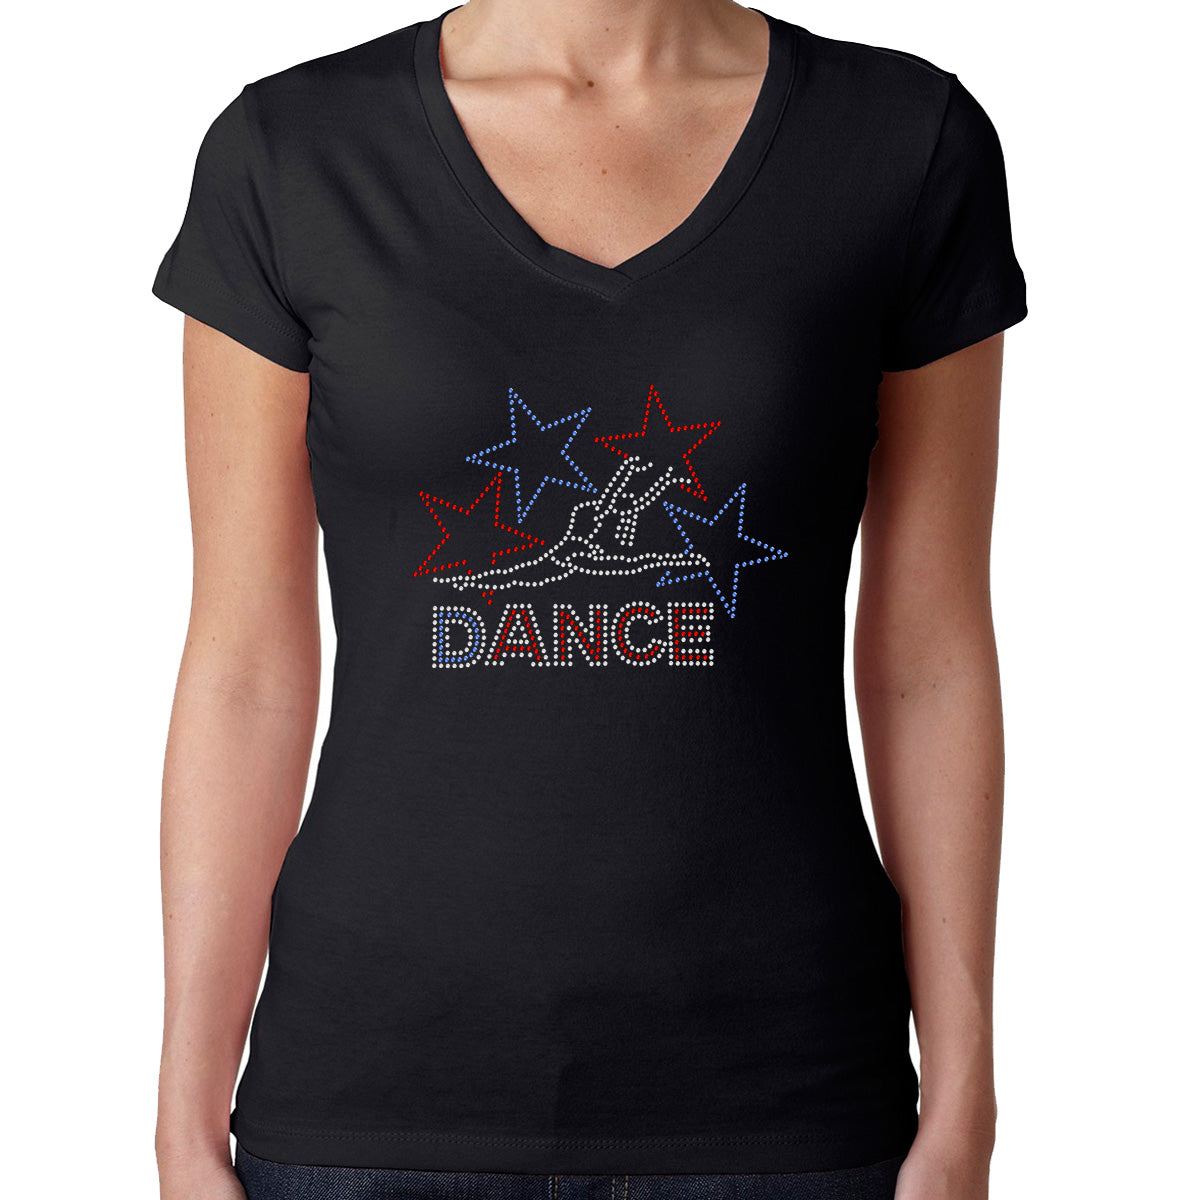 Womens T-Shirt Rhinestone Bling Black Fitted Tee Dance Dancer Stars Red White